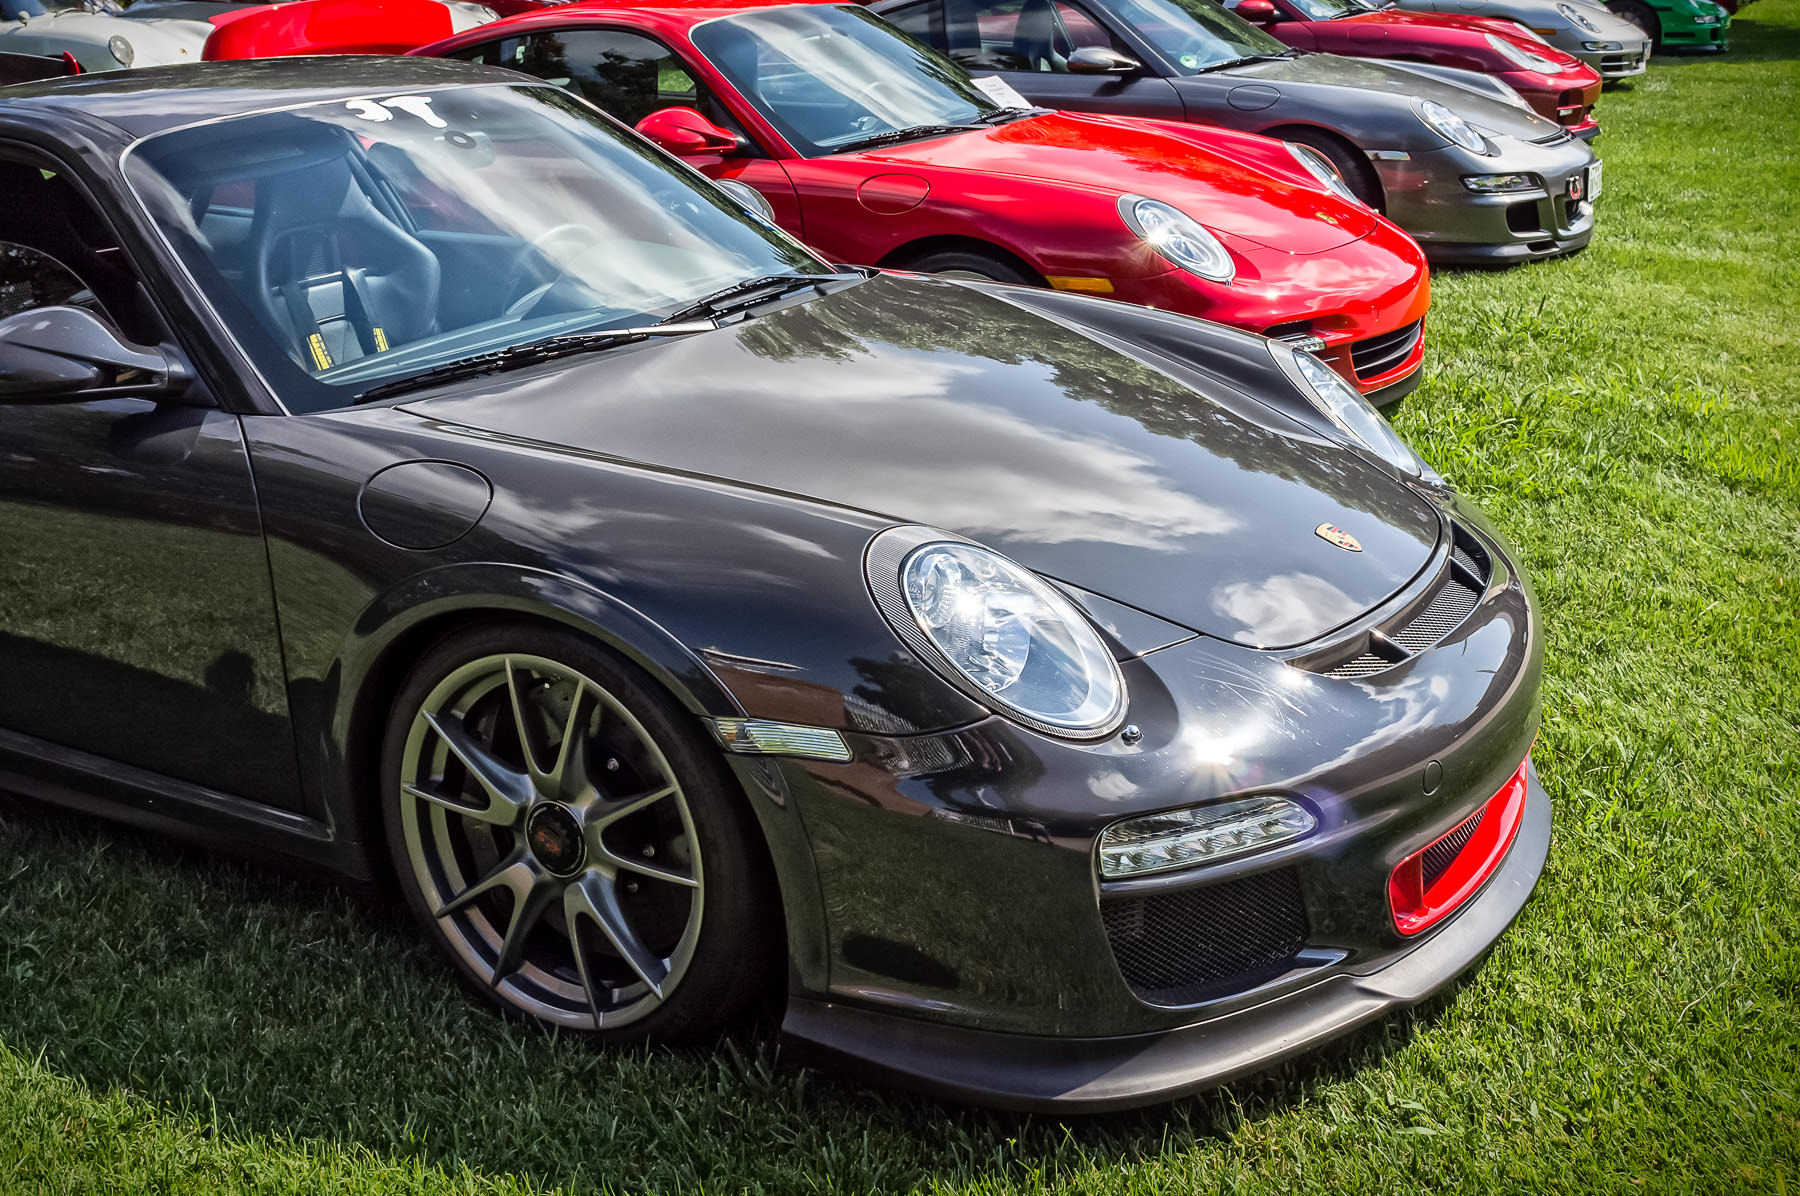 Several Porsche 911s (and related variants) at Dallas' Autos in the Park at Cooper Aerobics Center.